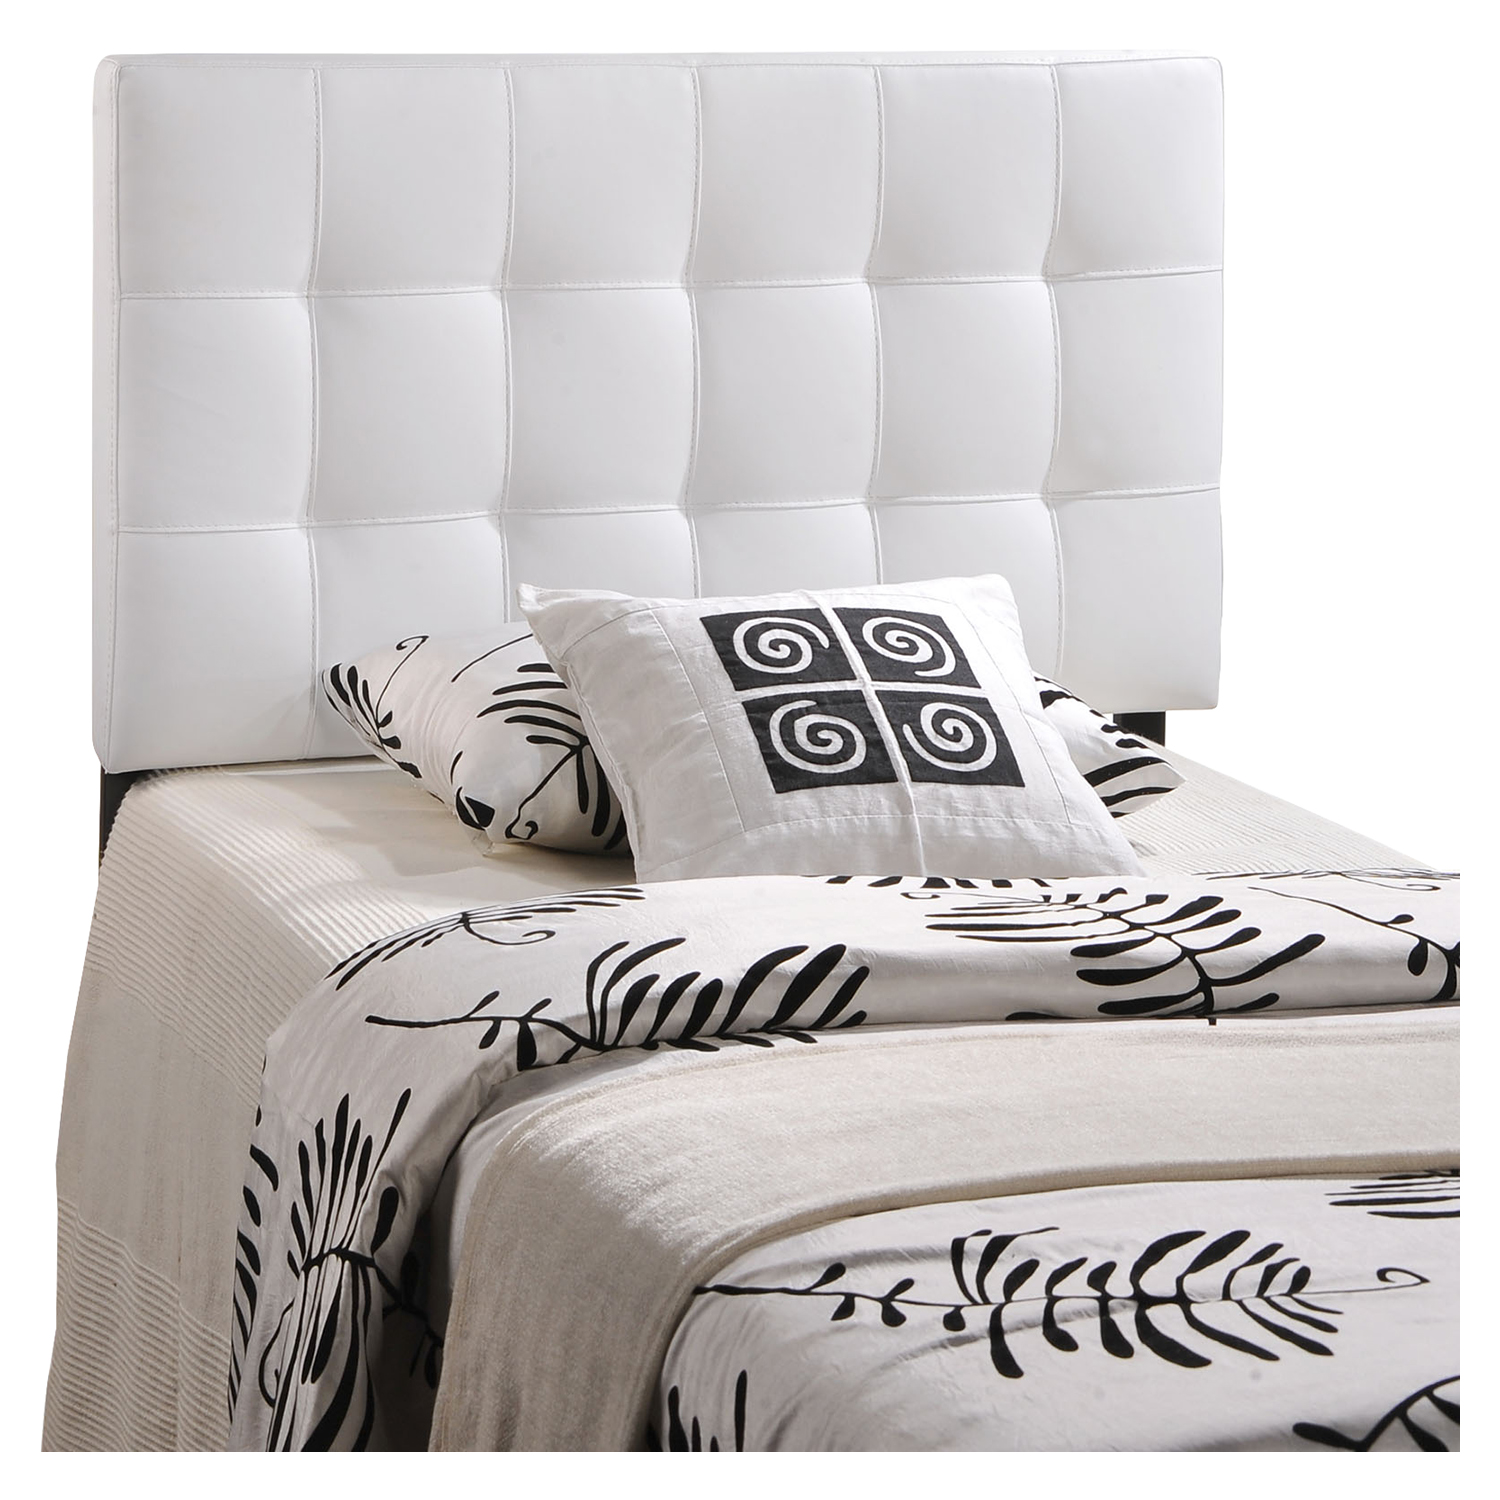 Lily Twin Leatherette Headboard - Tufted, White - EEI-MOD-5149-WHI